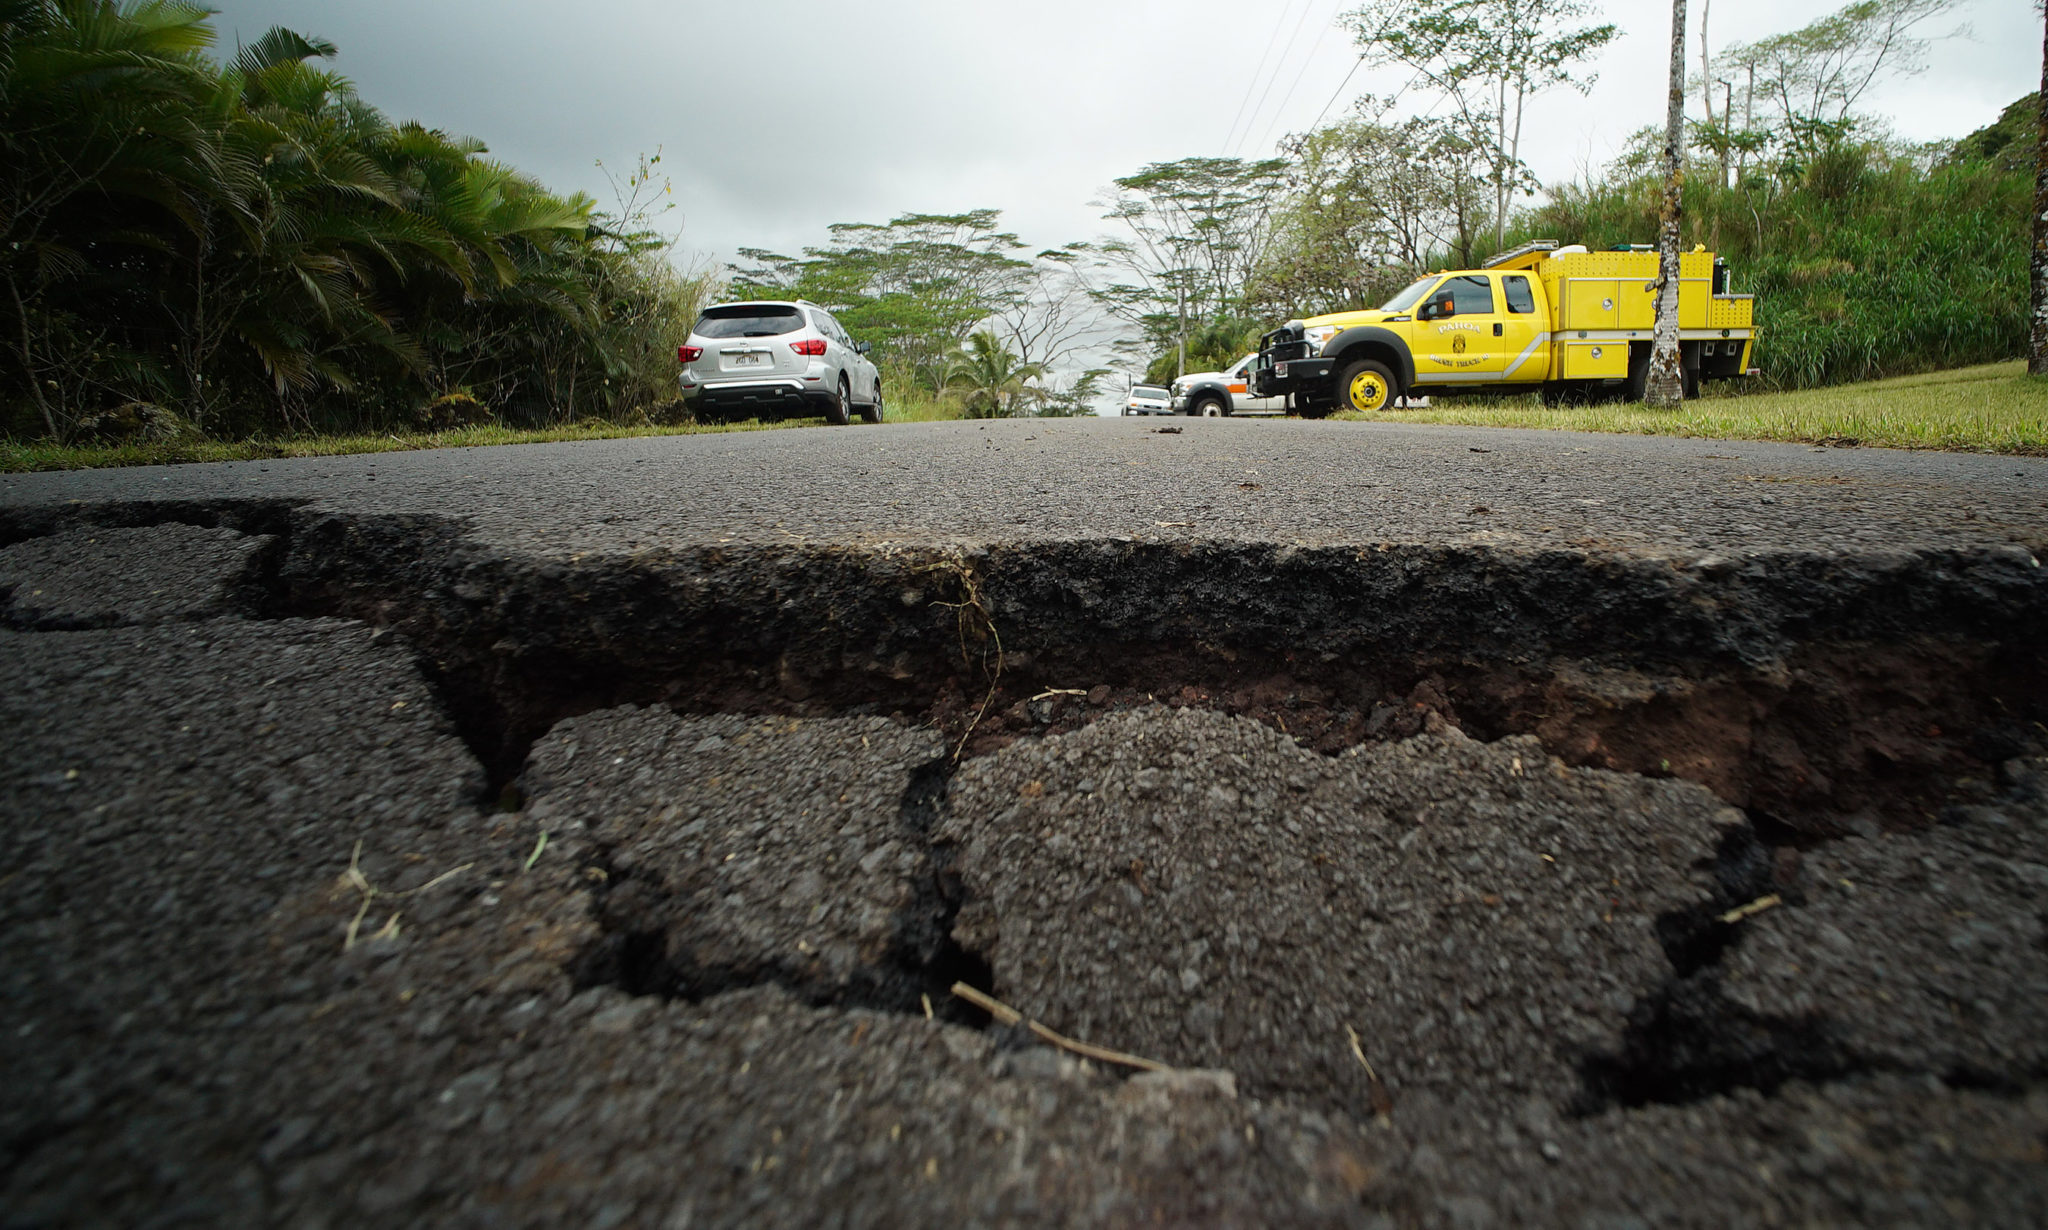 <p>Cracked roads on Kahukai Street in Leilani Estates, where alerts went off on Tuesday notifying residents of an emergency evacuation due to poisonous gases.</p>